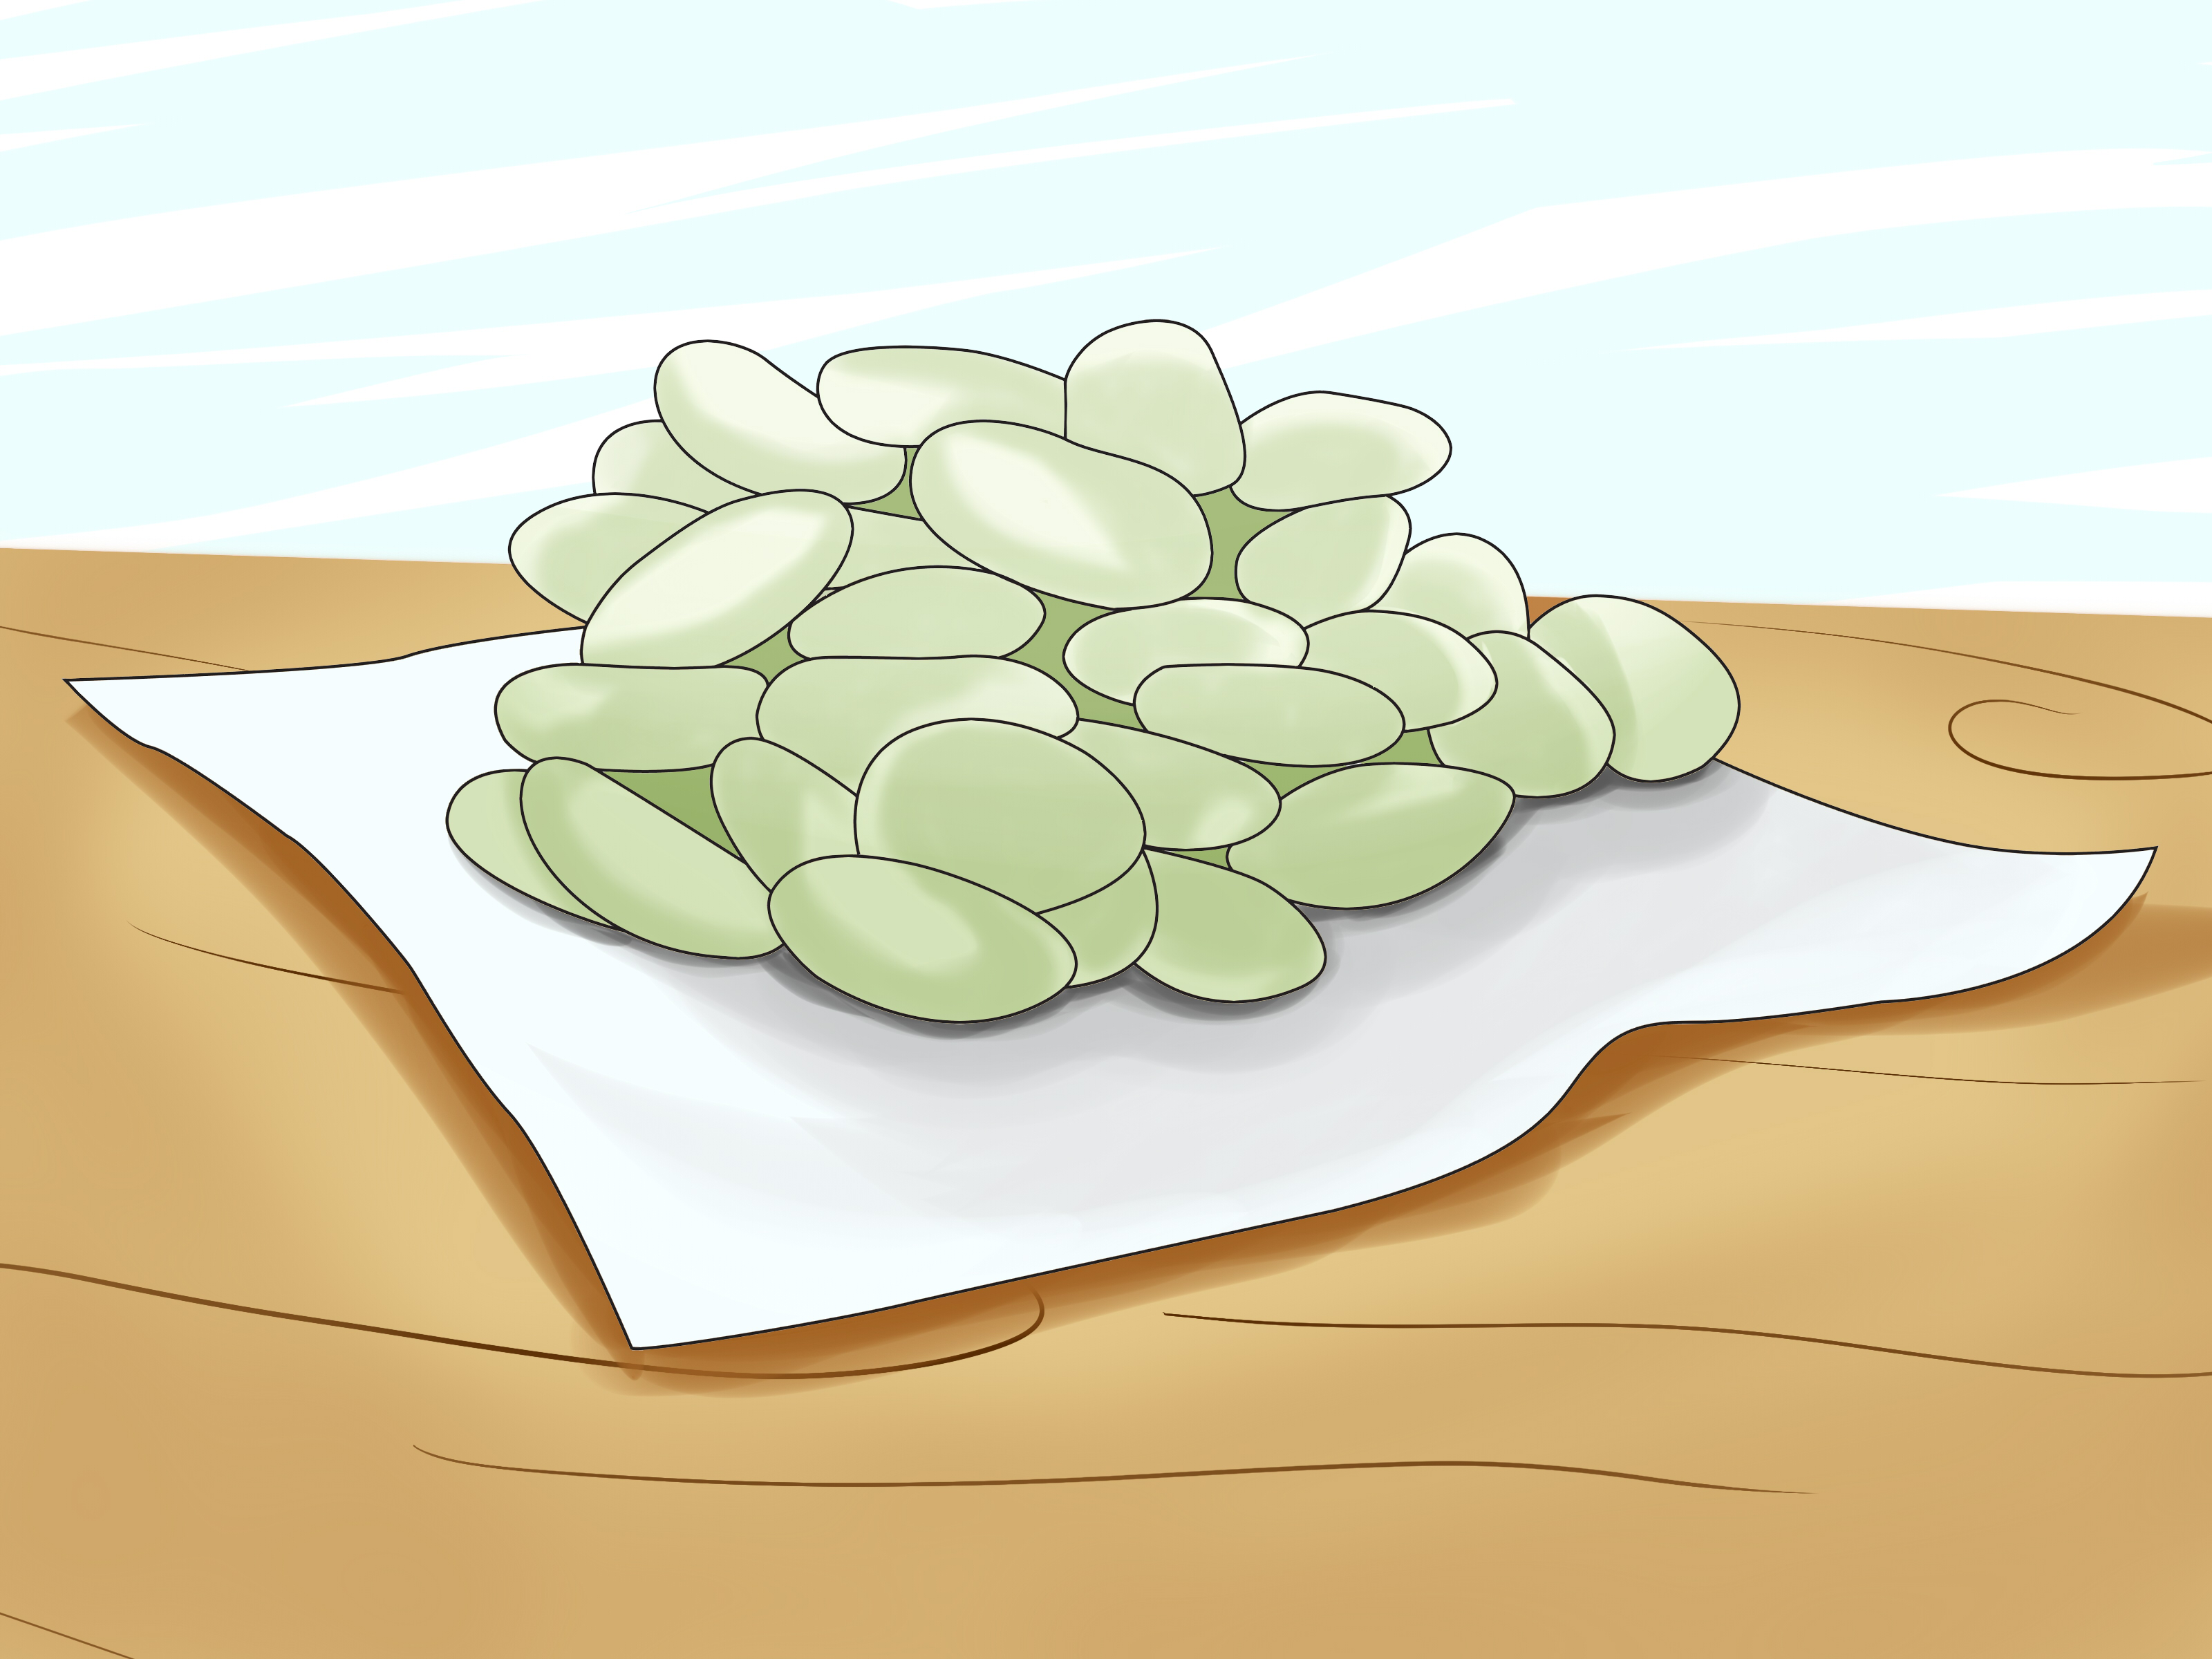 How To Grow Lima Beans 13 Steps With Pictures